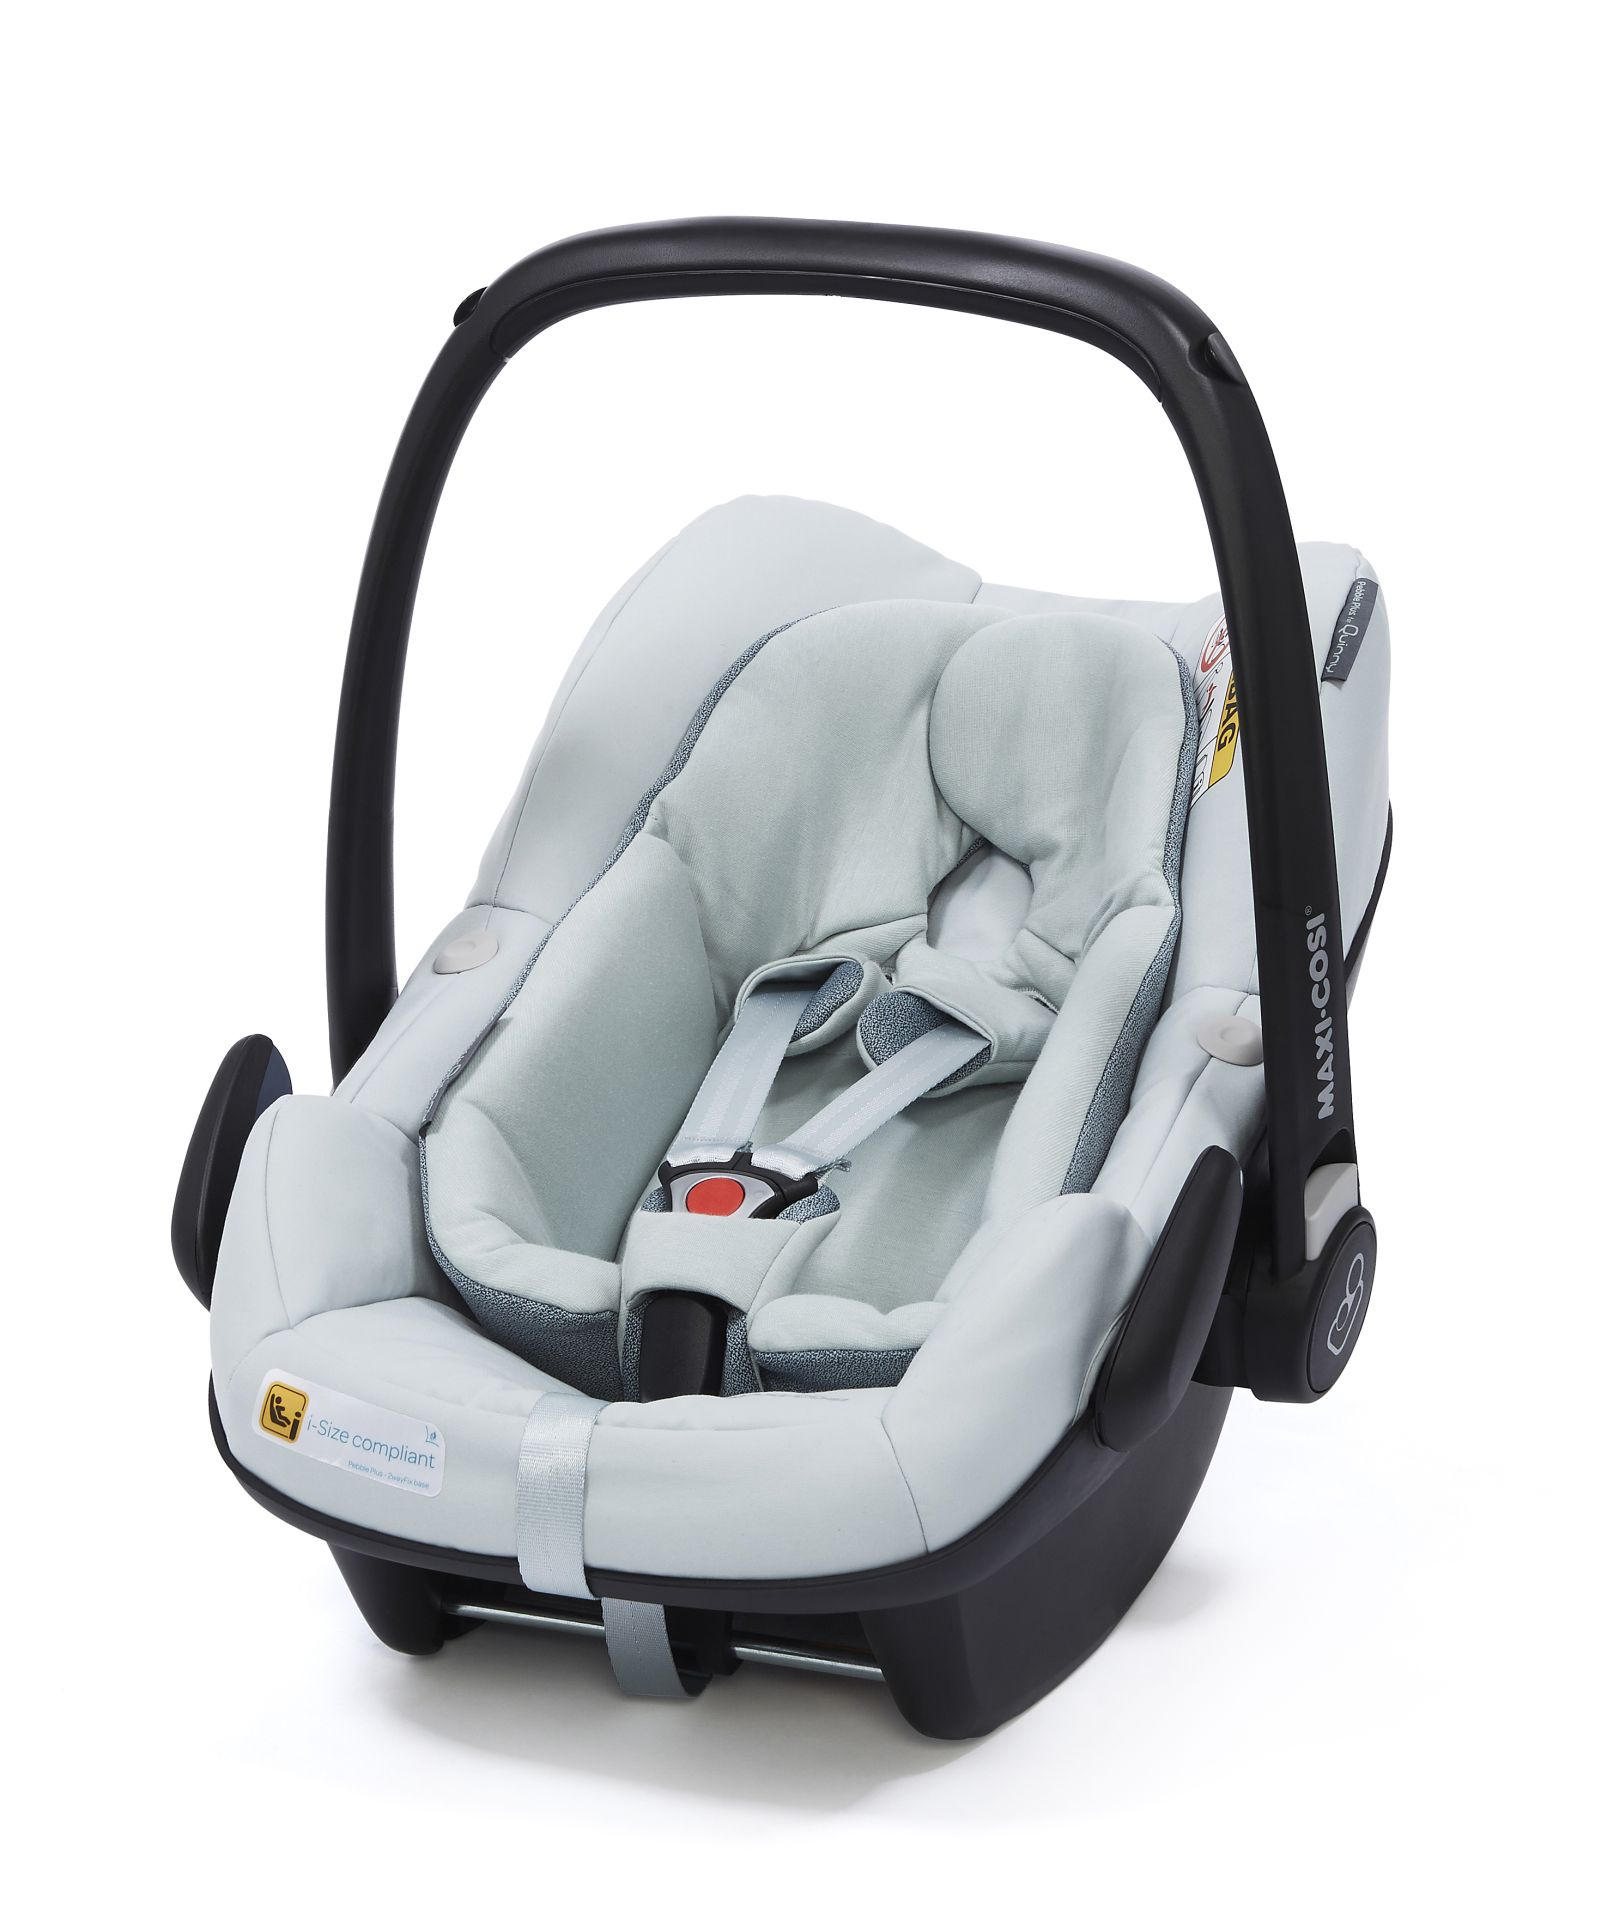 maxi cosi infant car seat pebble plus 2018 grey buy at kidsroom car seats. Black Bedroom Furniture Sets. Home Design Ideas